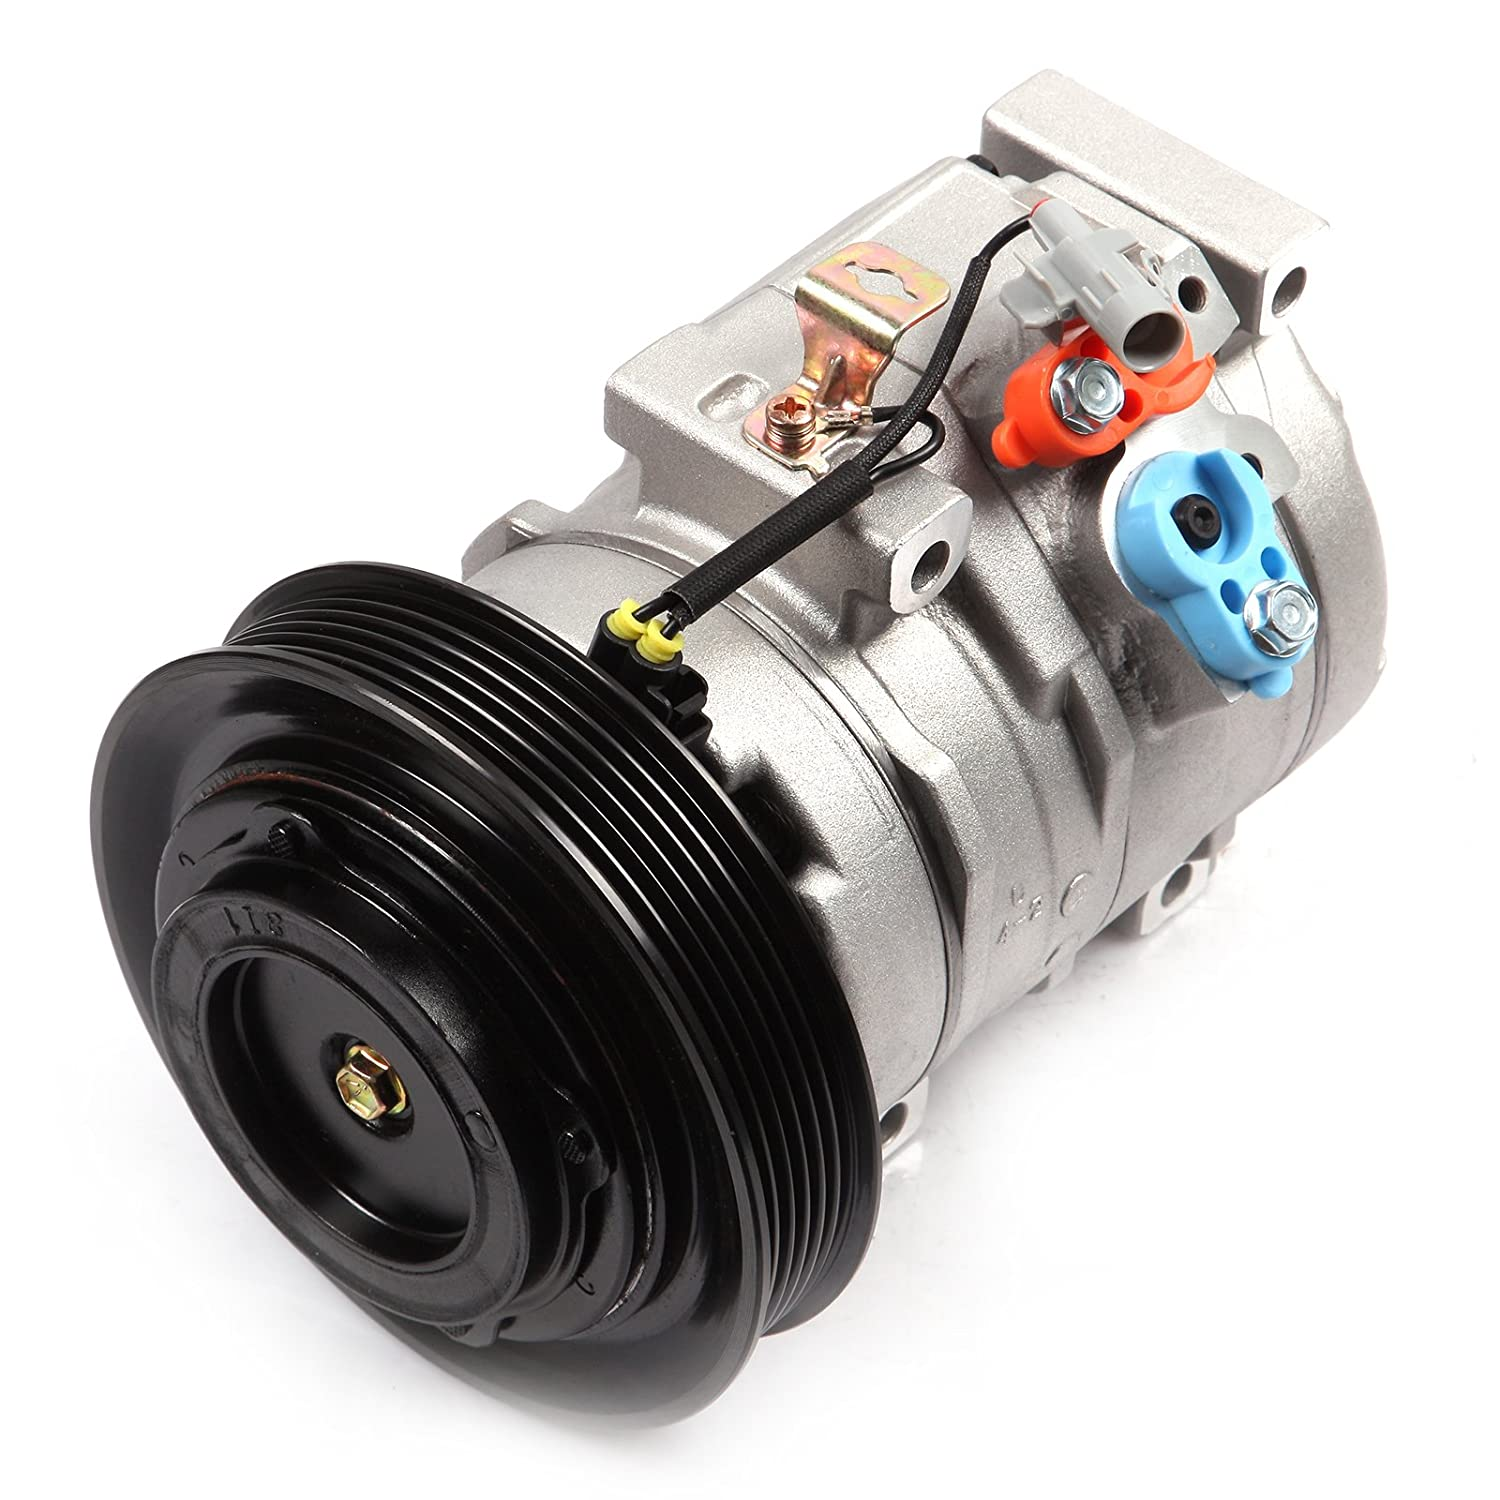 AC Compressor and A/C Cluth ECCPP CO 27000C Automotive Replacement Compressor Assembly for 2003-2008 Toyota Corolla 1.8L 104005-5211-1615262